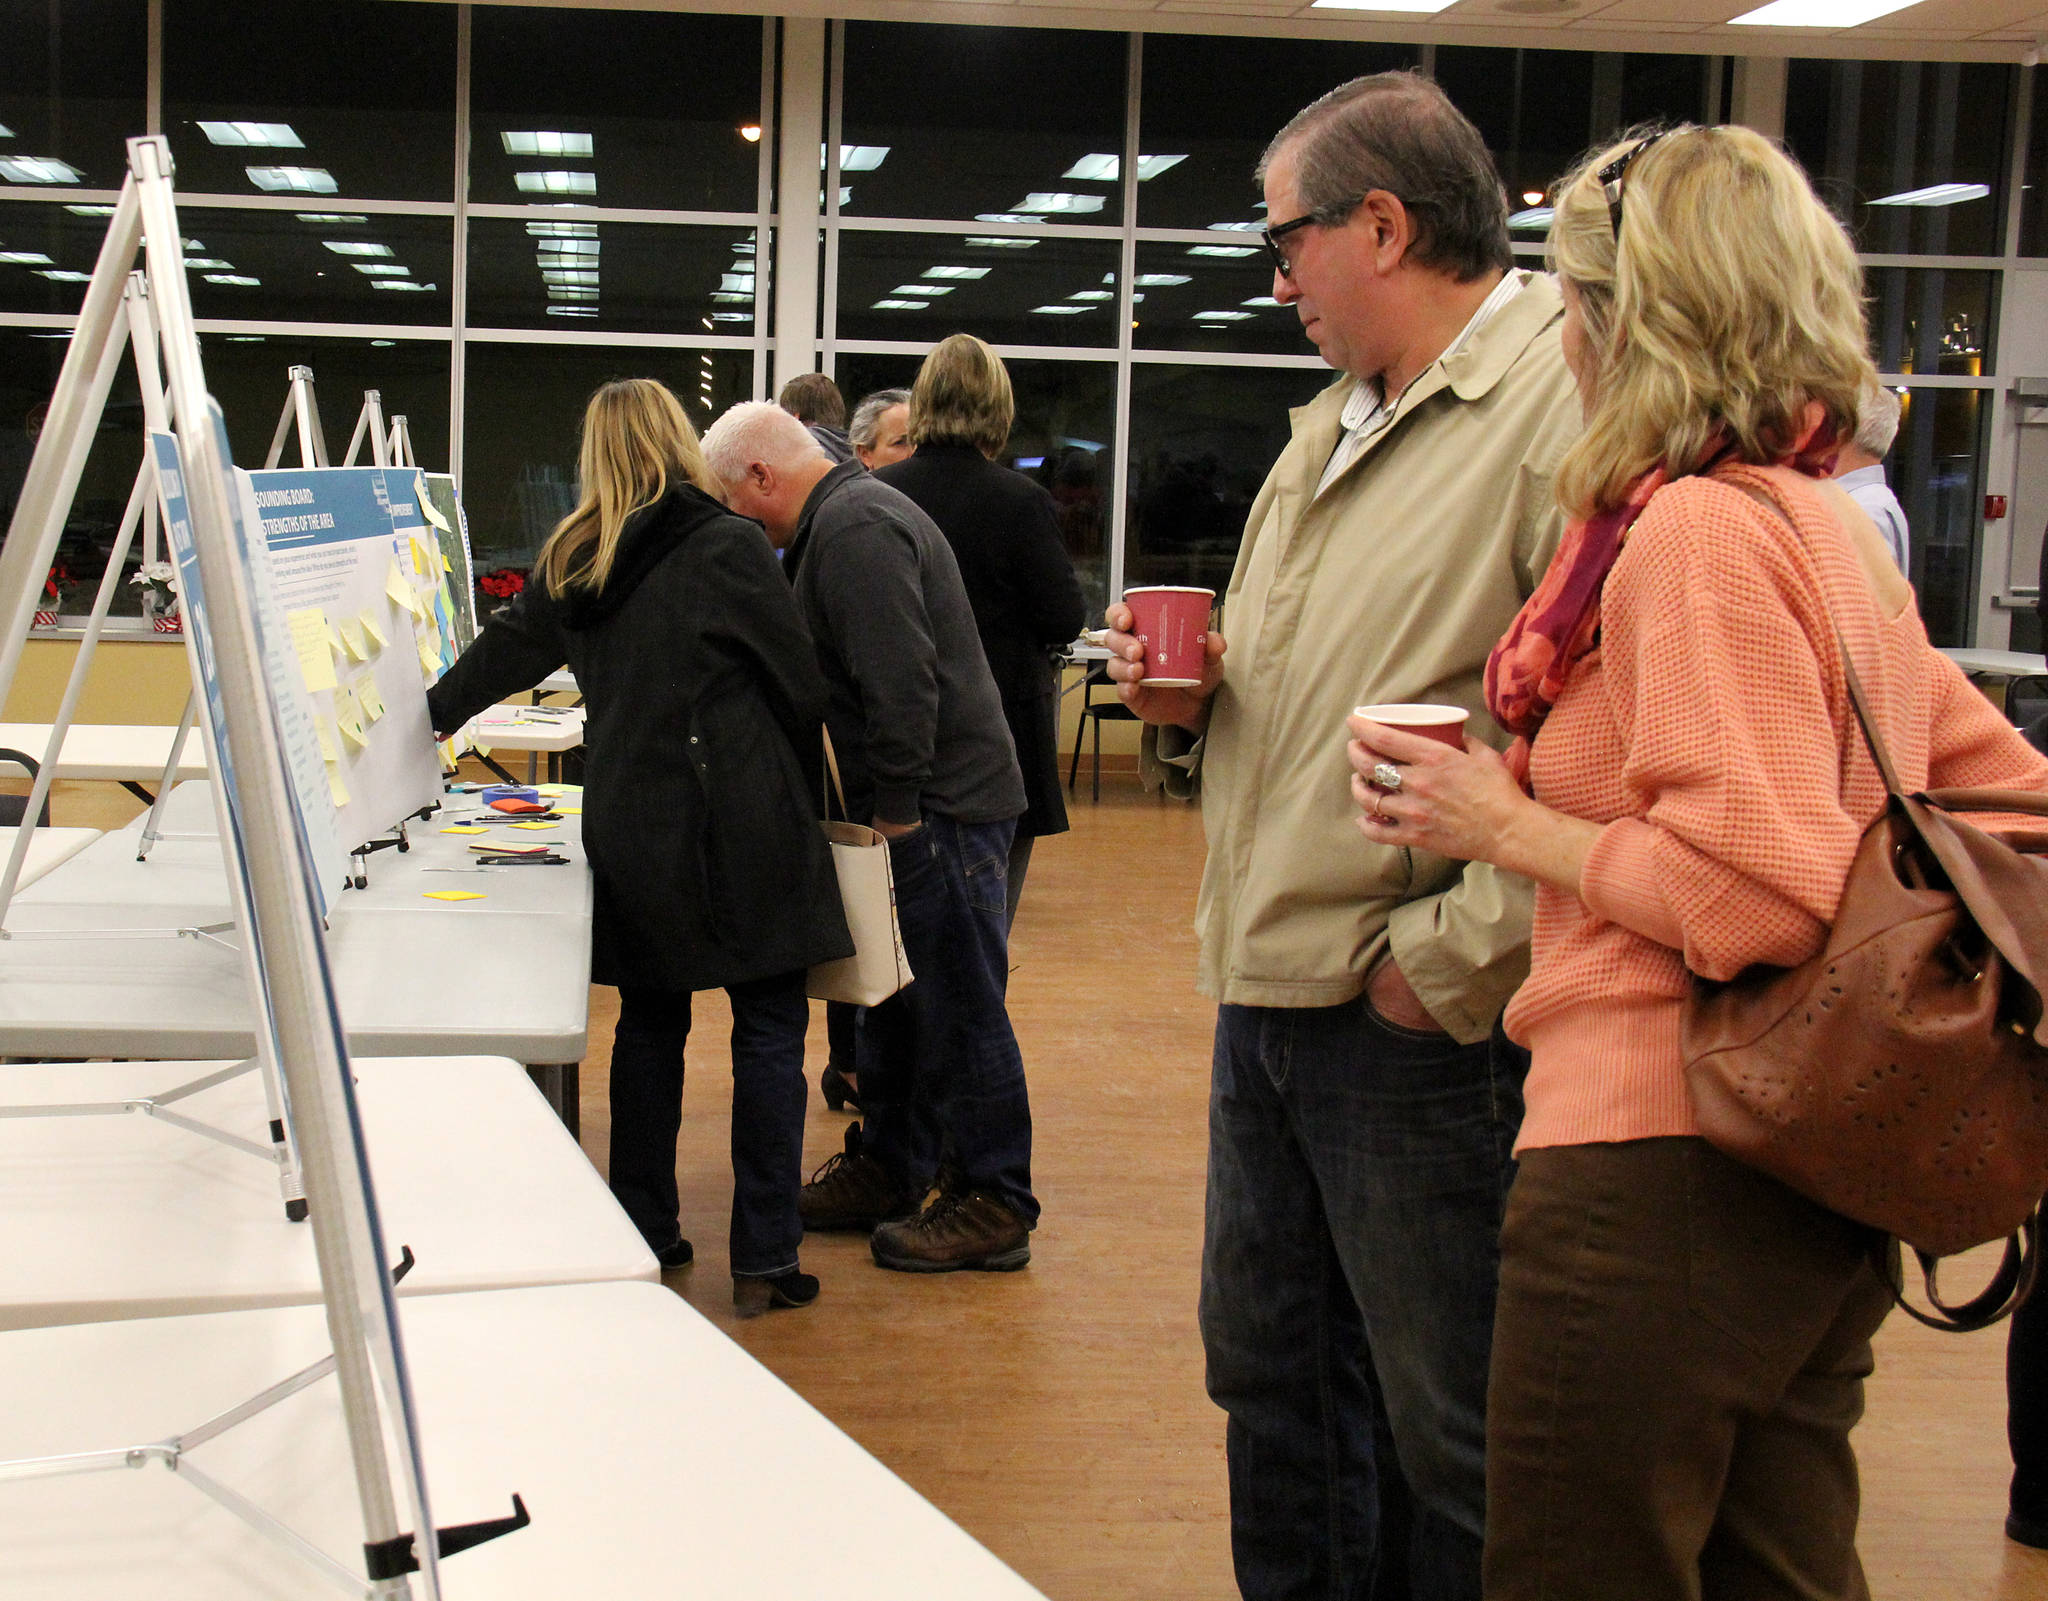 Many residents came out to a recent open house, hosted at the Senior's Centre, to find out what the IDP is what what it could effect. Those who were present at the open house were also able to voice their areas of concern.